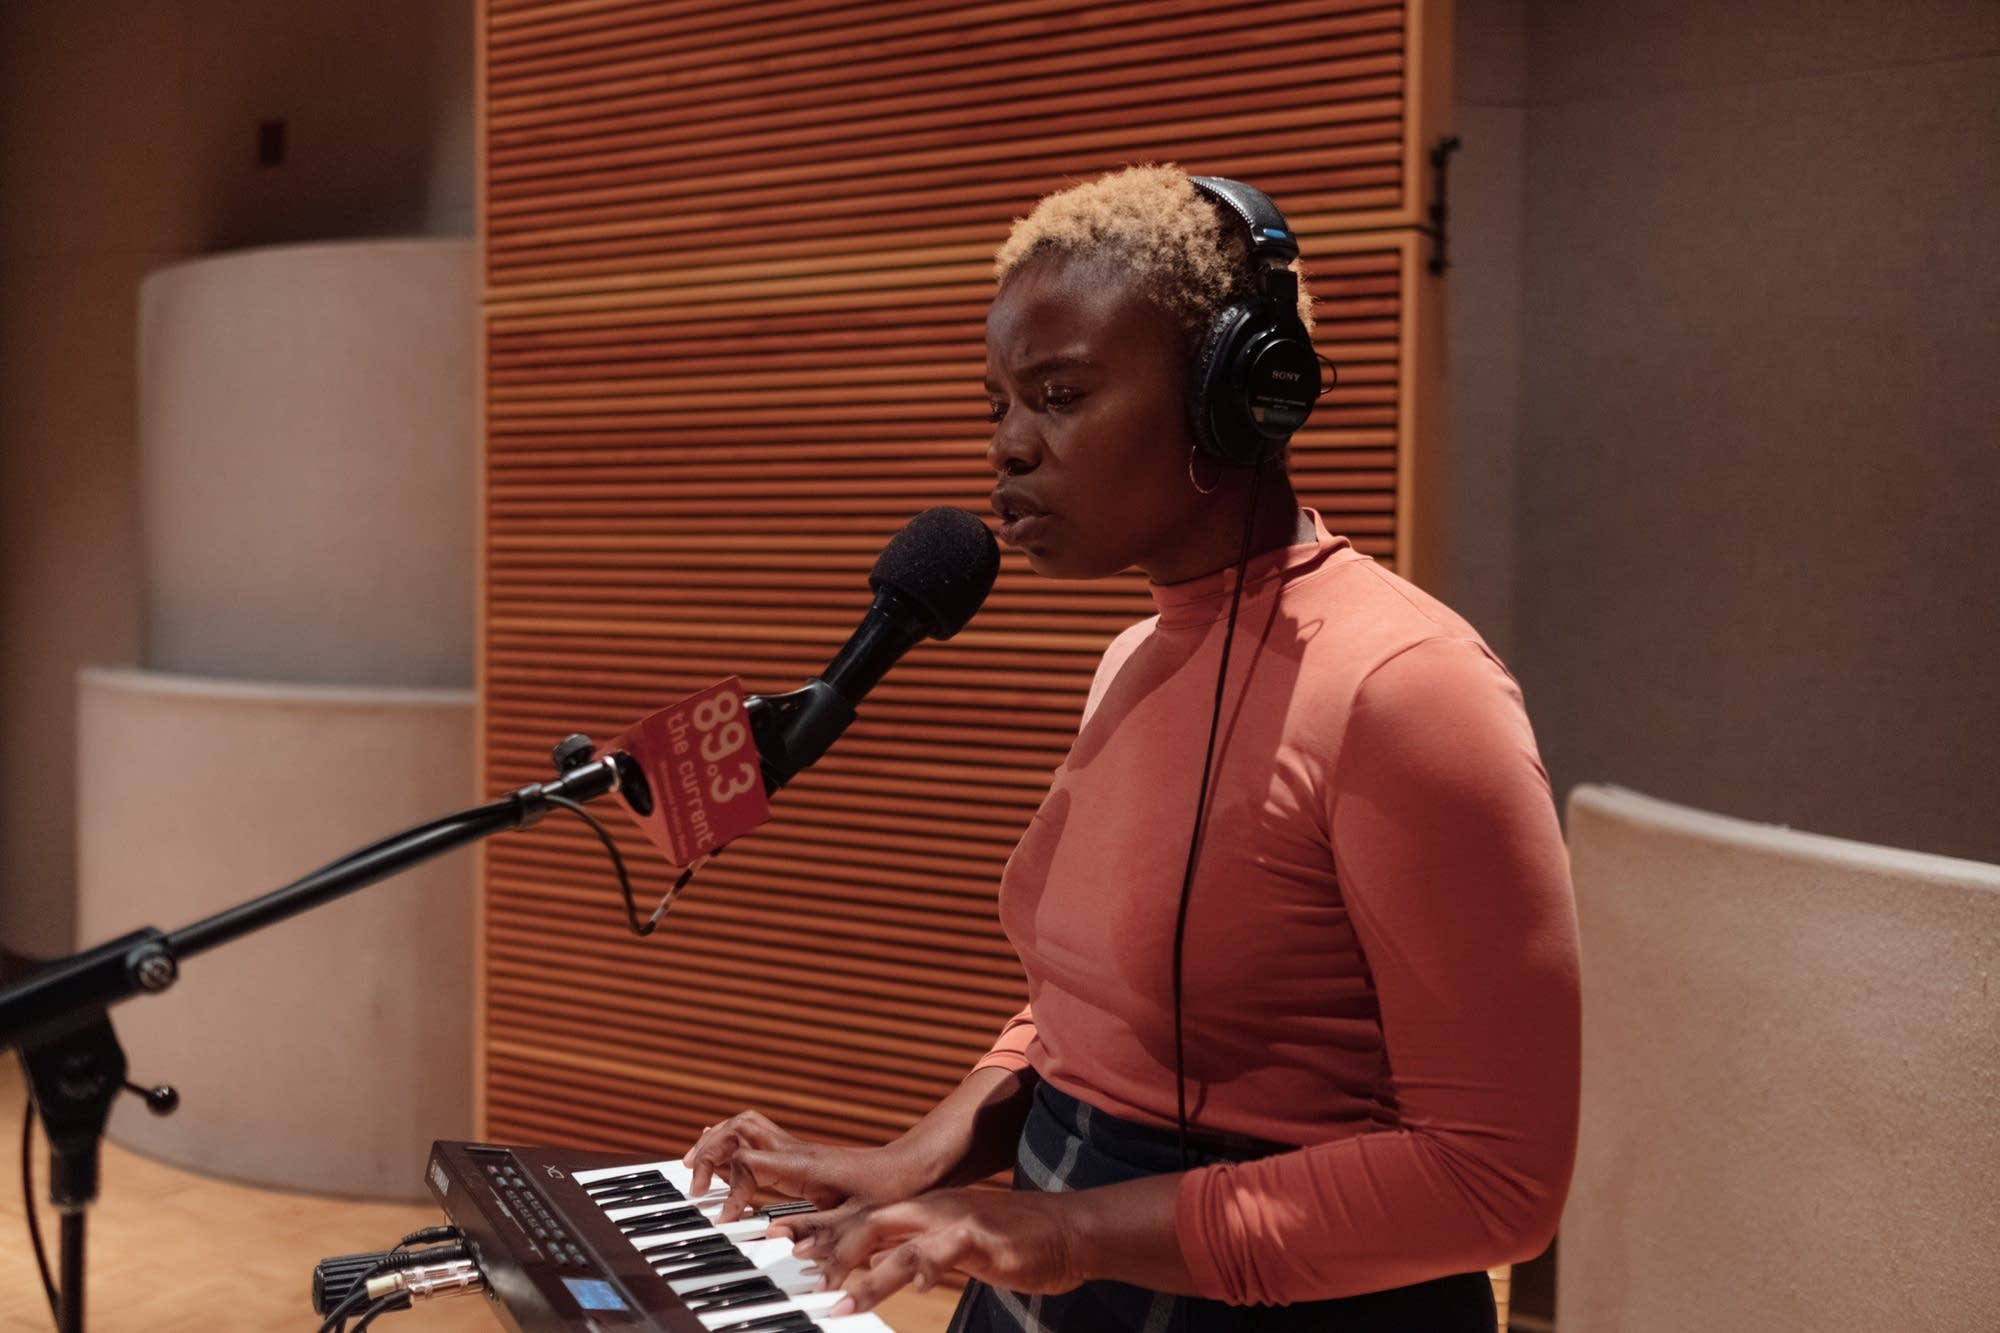 Vagabon performs in The Current studio